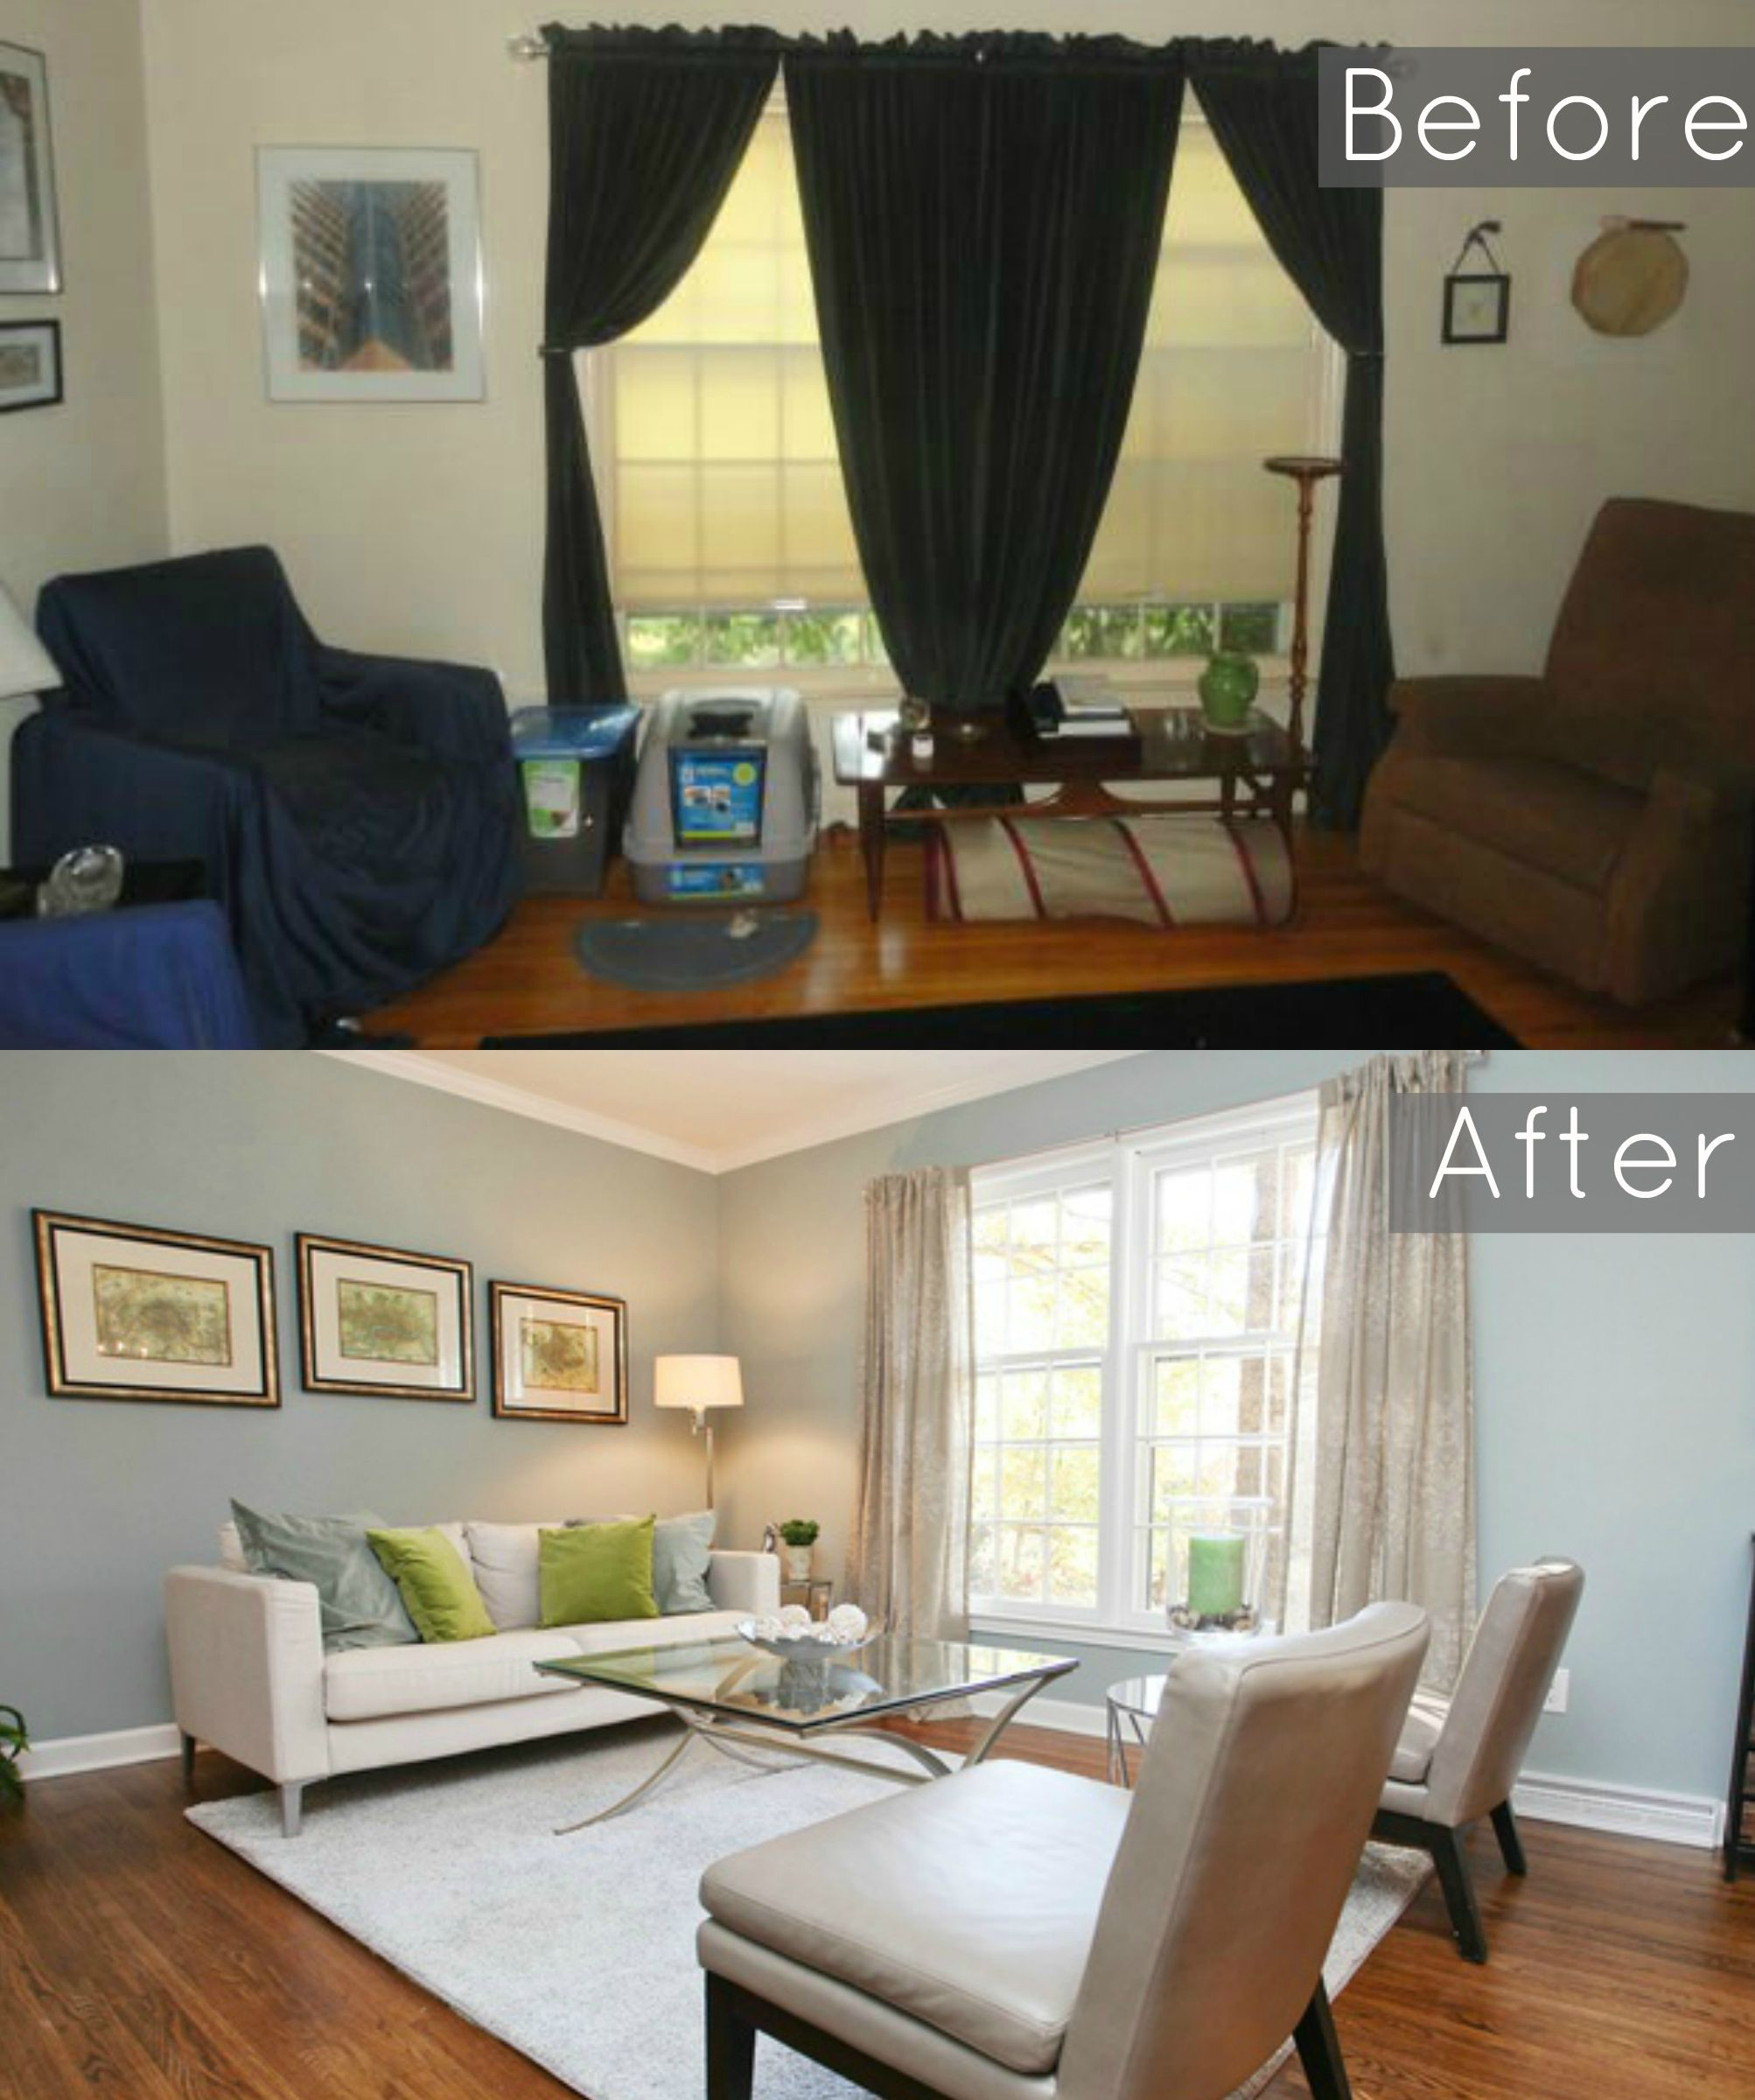 Second Home Decorating Ideas: Before And After Of Our Ugly 1960's Split Level Remodel